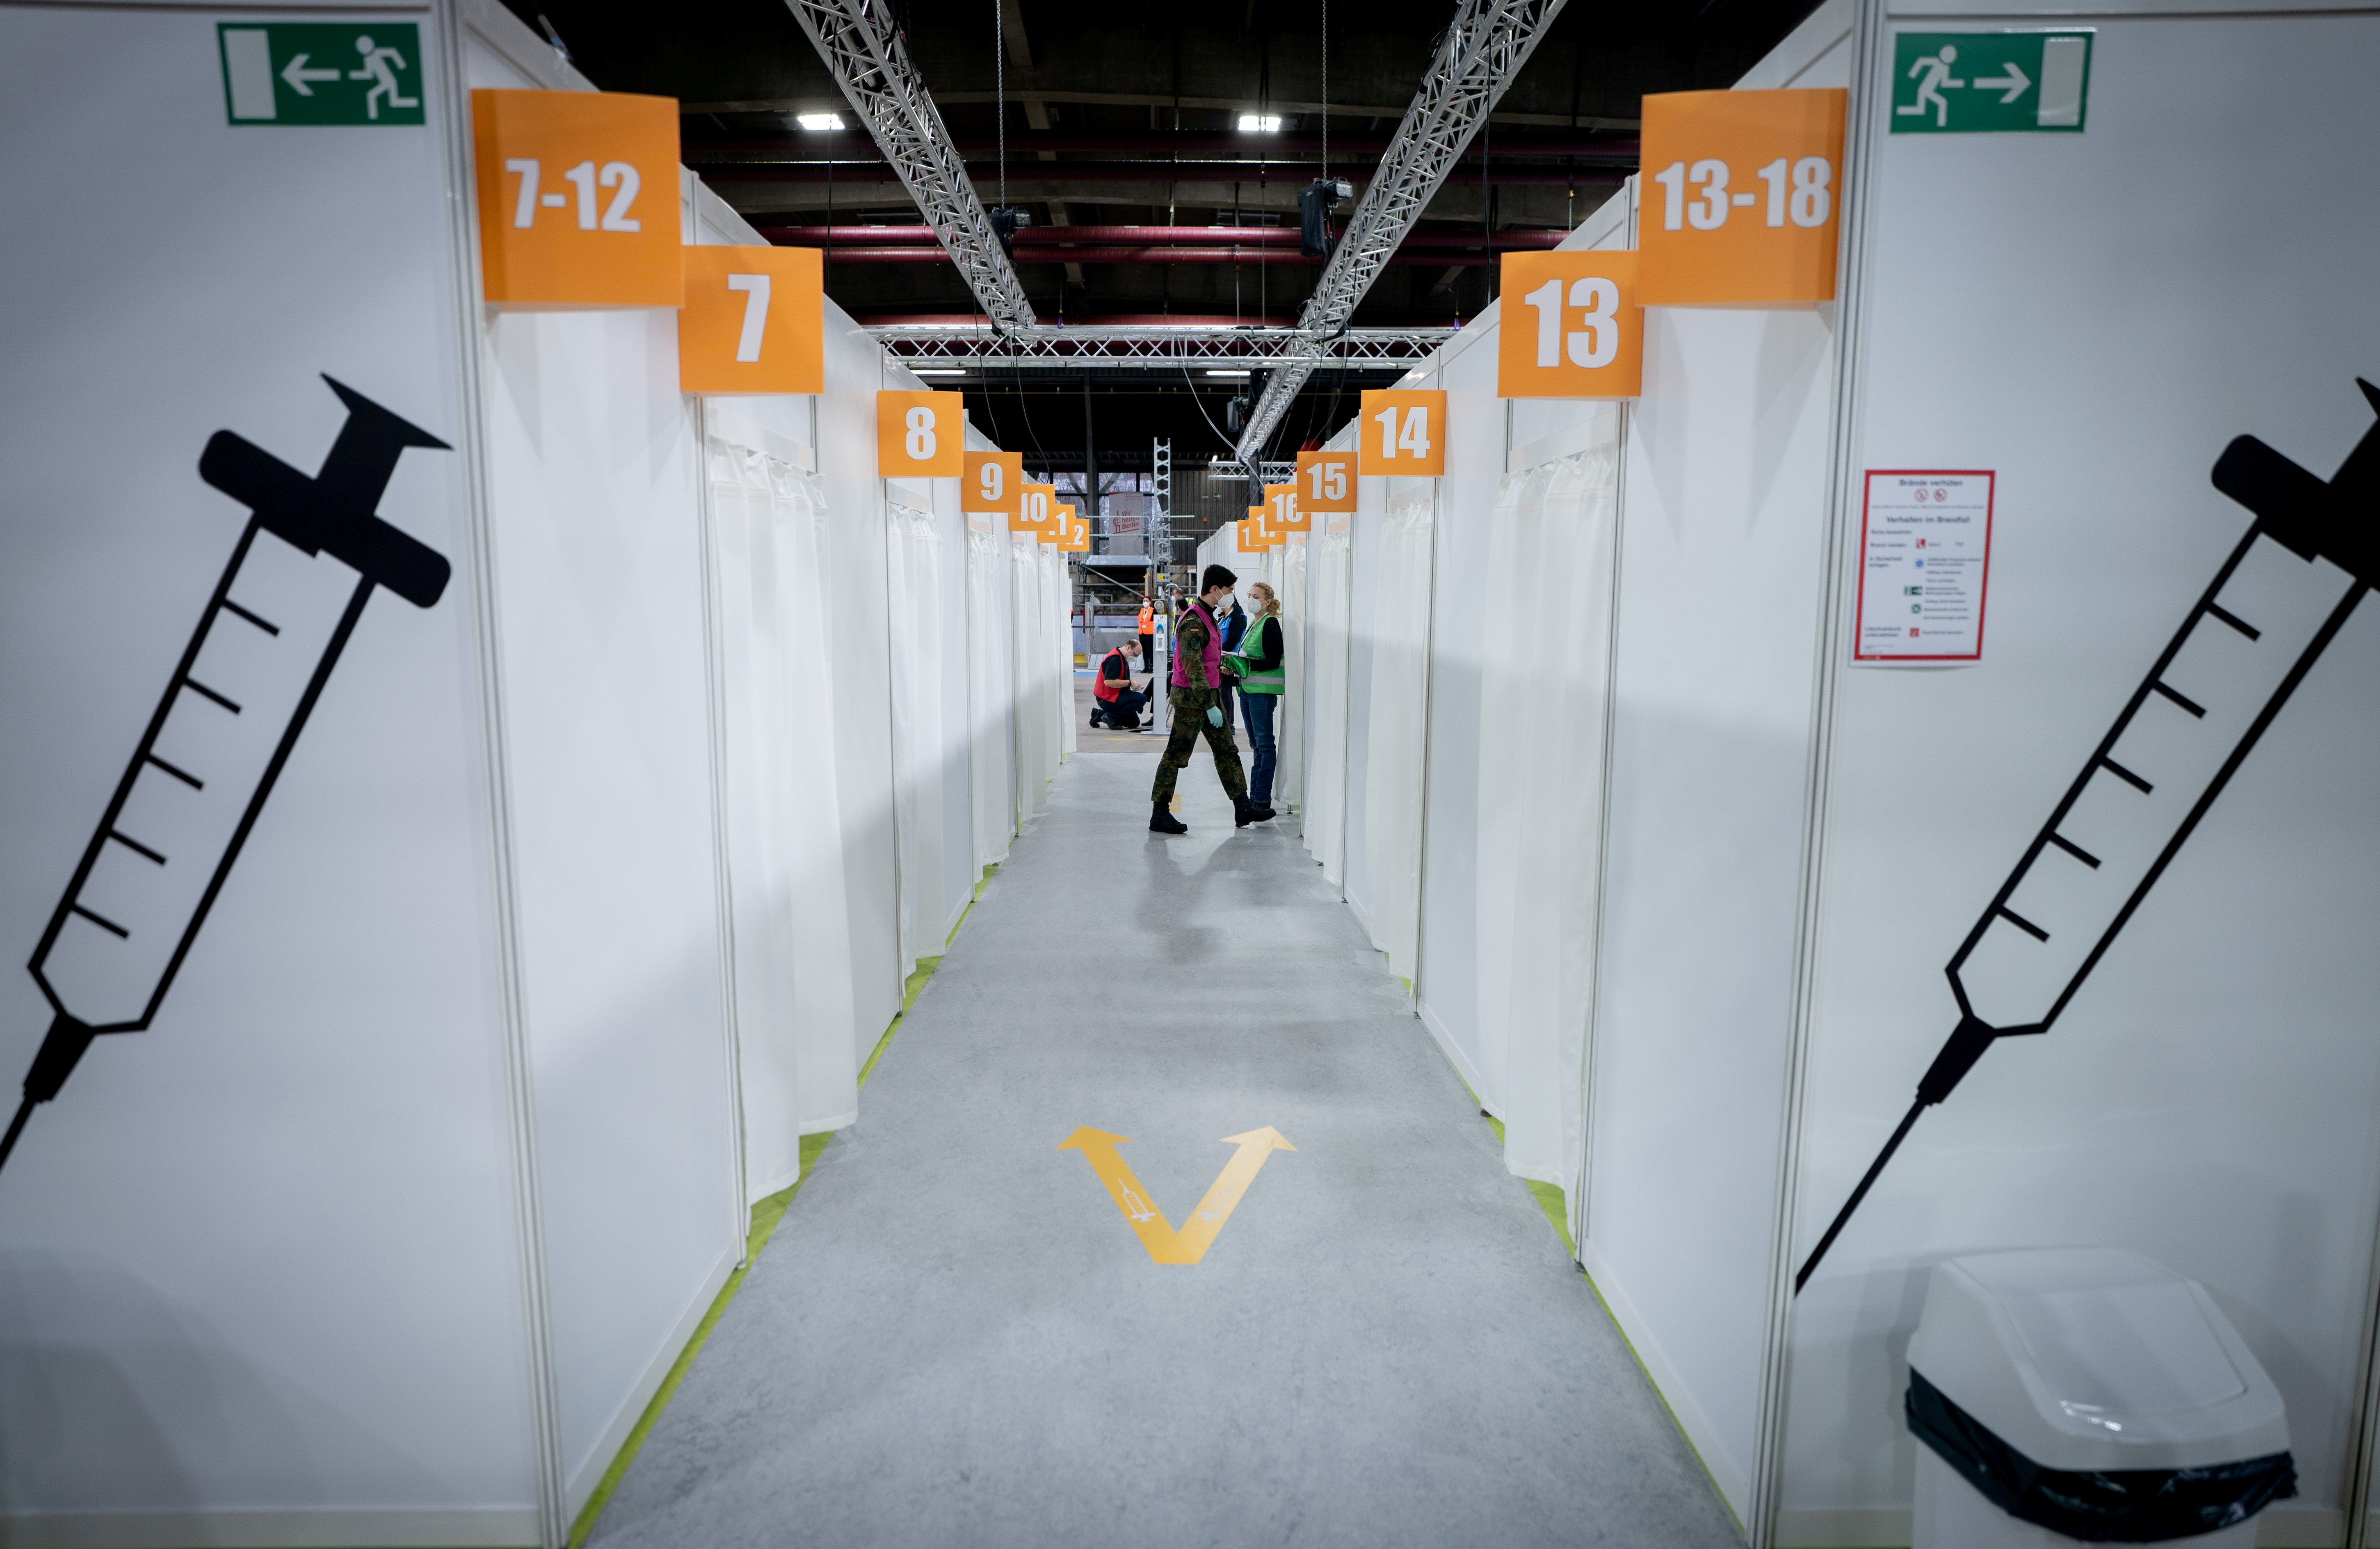 Cabins at a vaccination centre set up in the Erika-Hess ice stadium to fight the coronavirus disease in Berlin, Germany, January 14, 2021. Kay Nietfeld/Pool via REUTERS